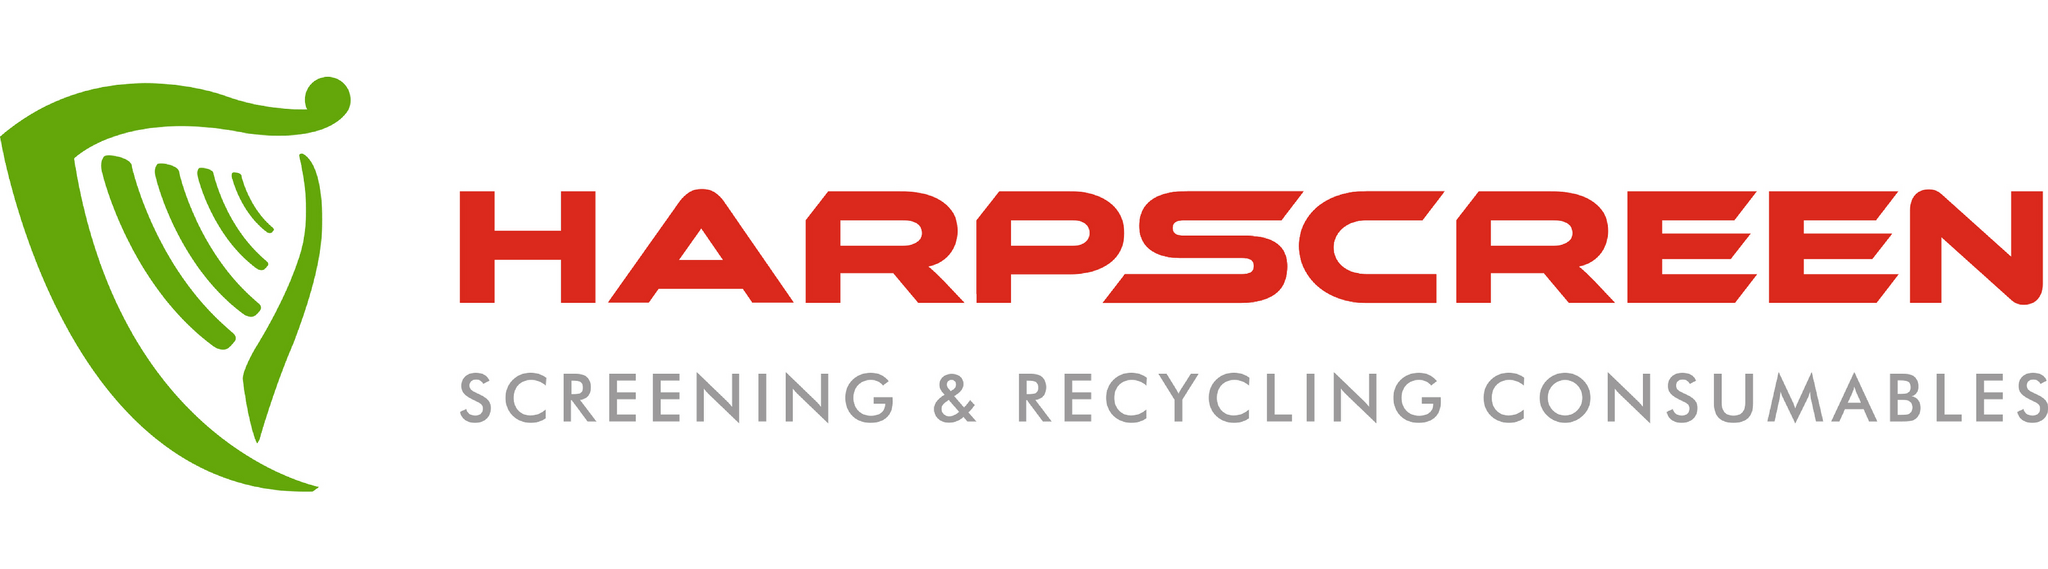 Harpscreen GB Ltd